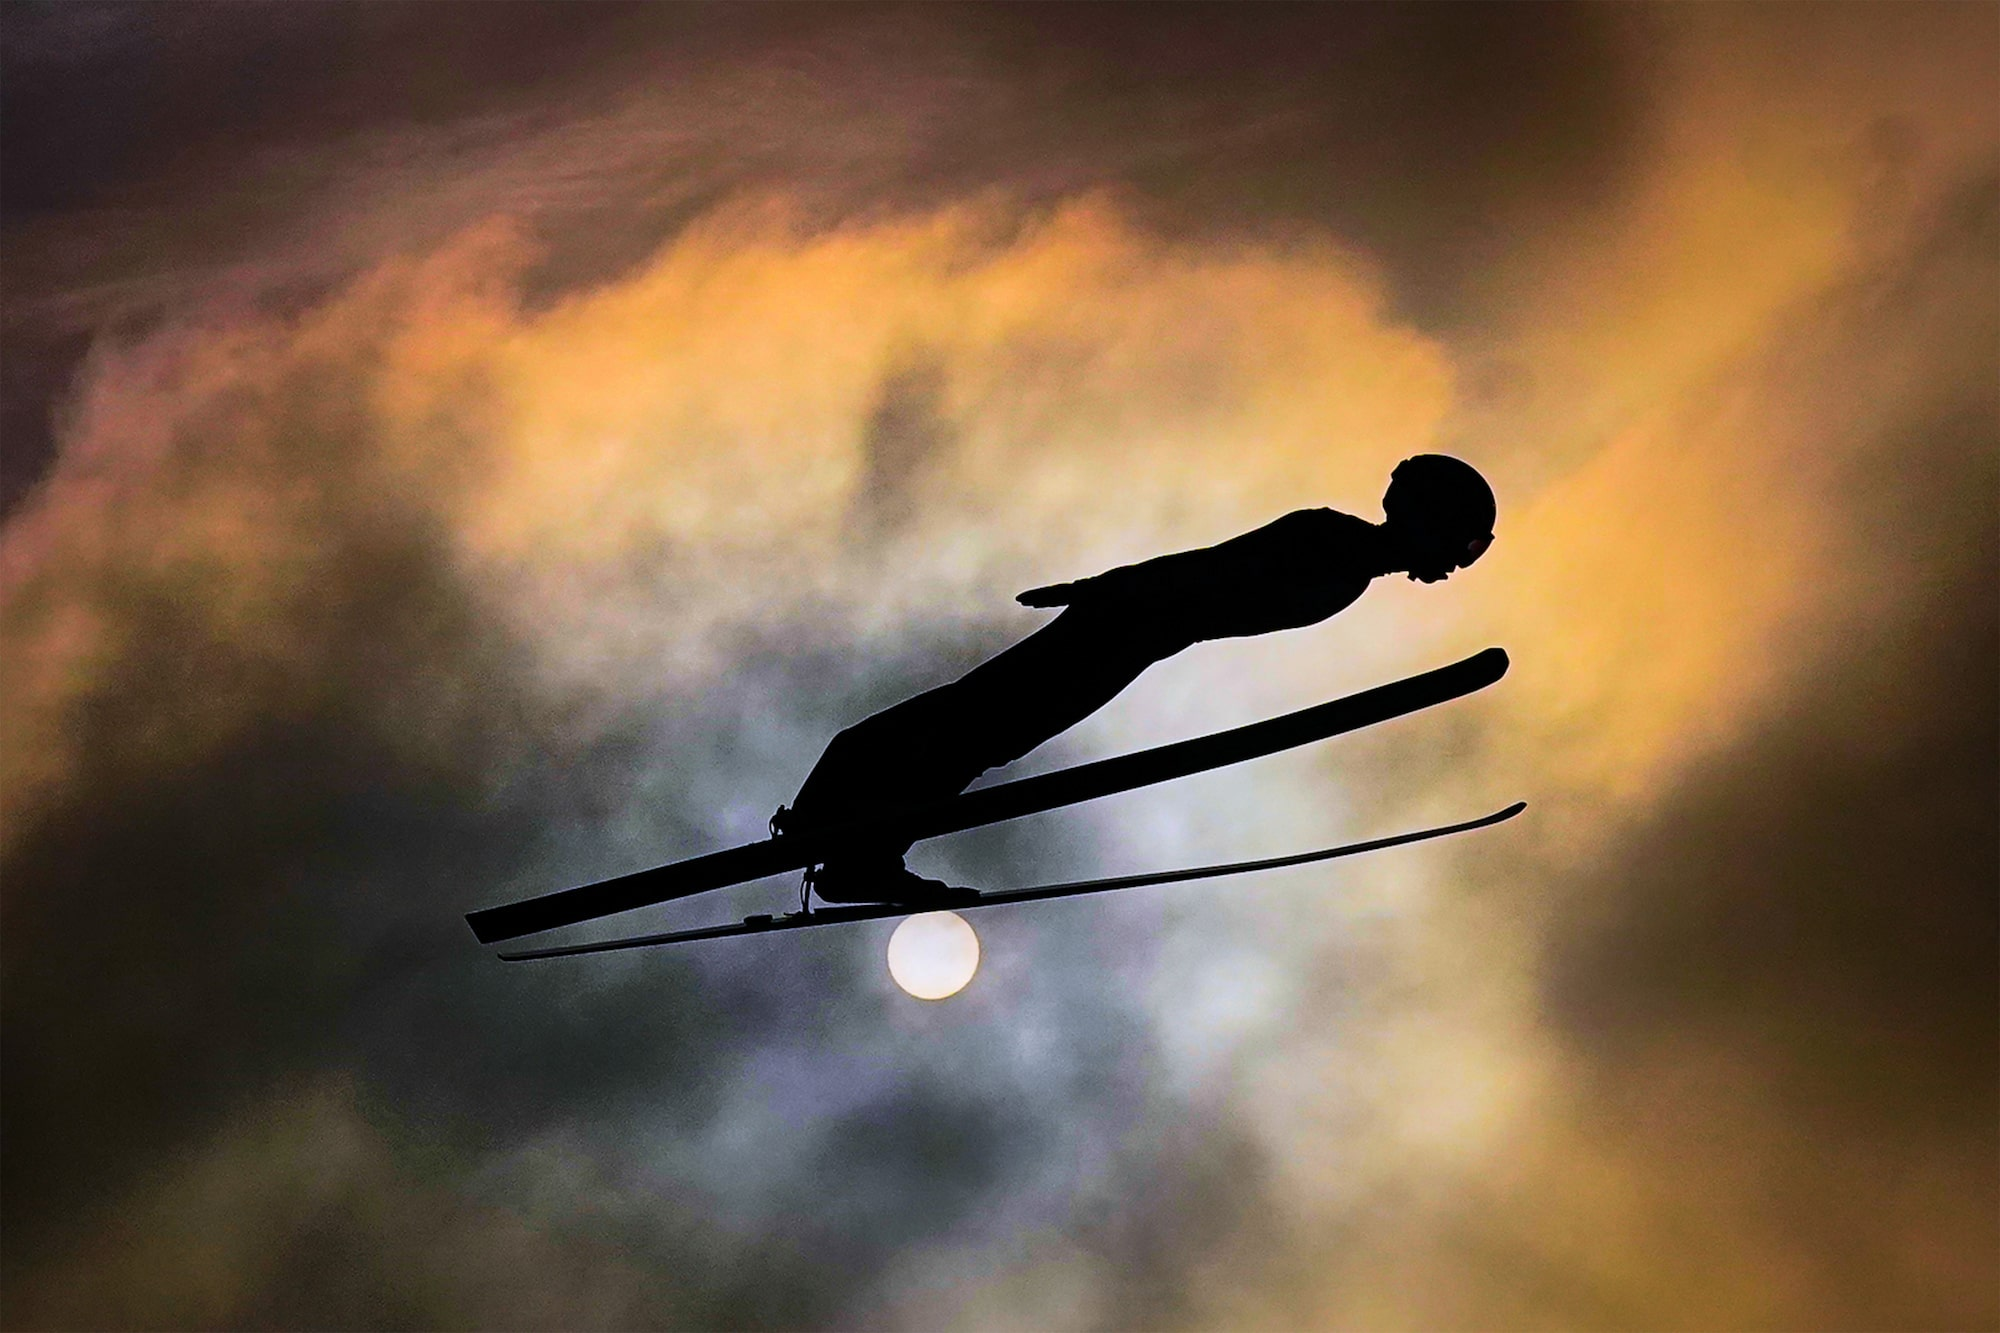 tomasz markowski sony alpha 9 ski jumper sideways on against an orange cloudy sun